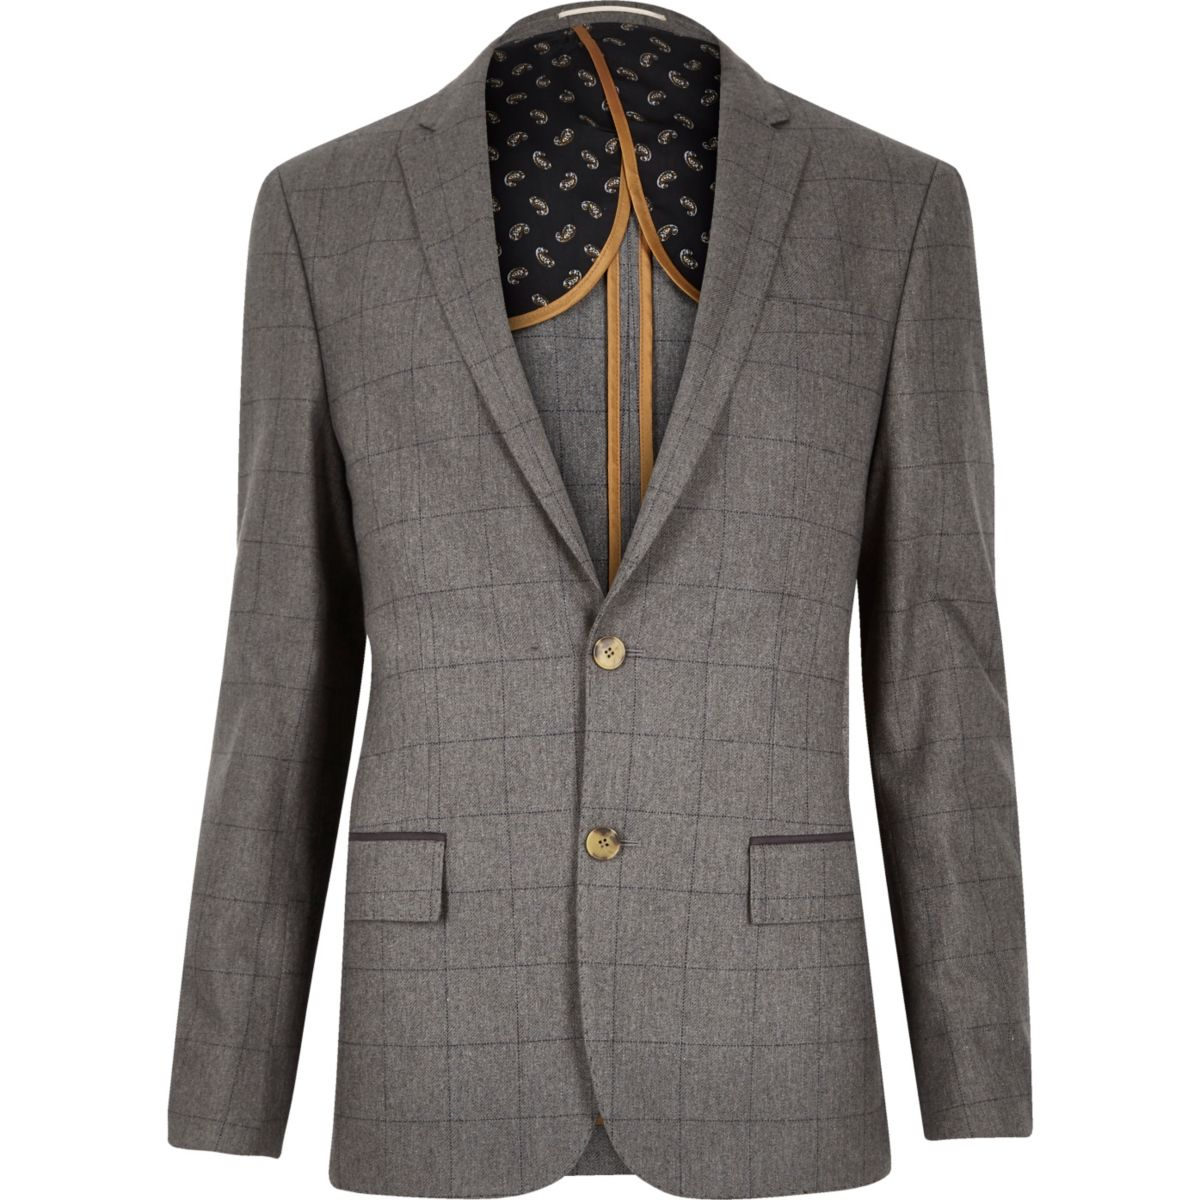 Grey check skinny suit jacket